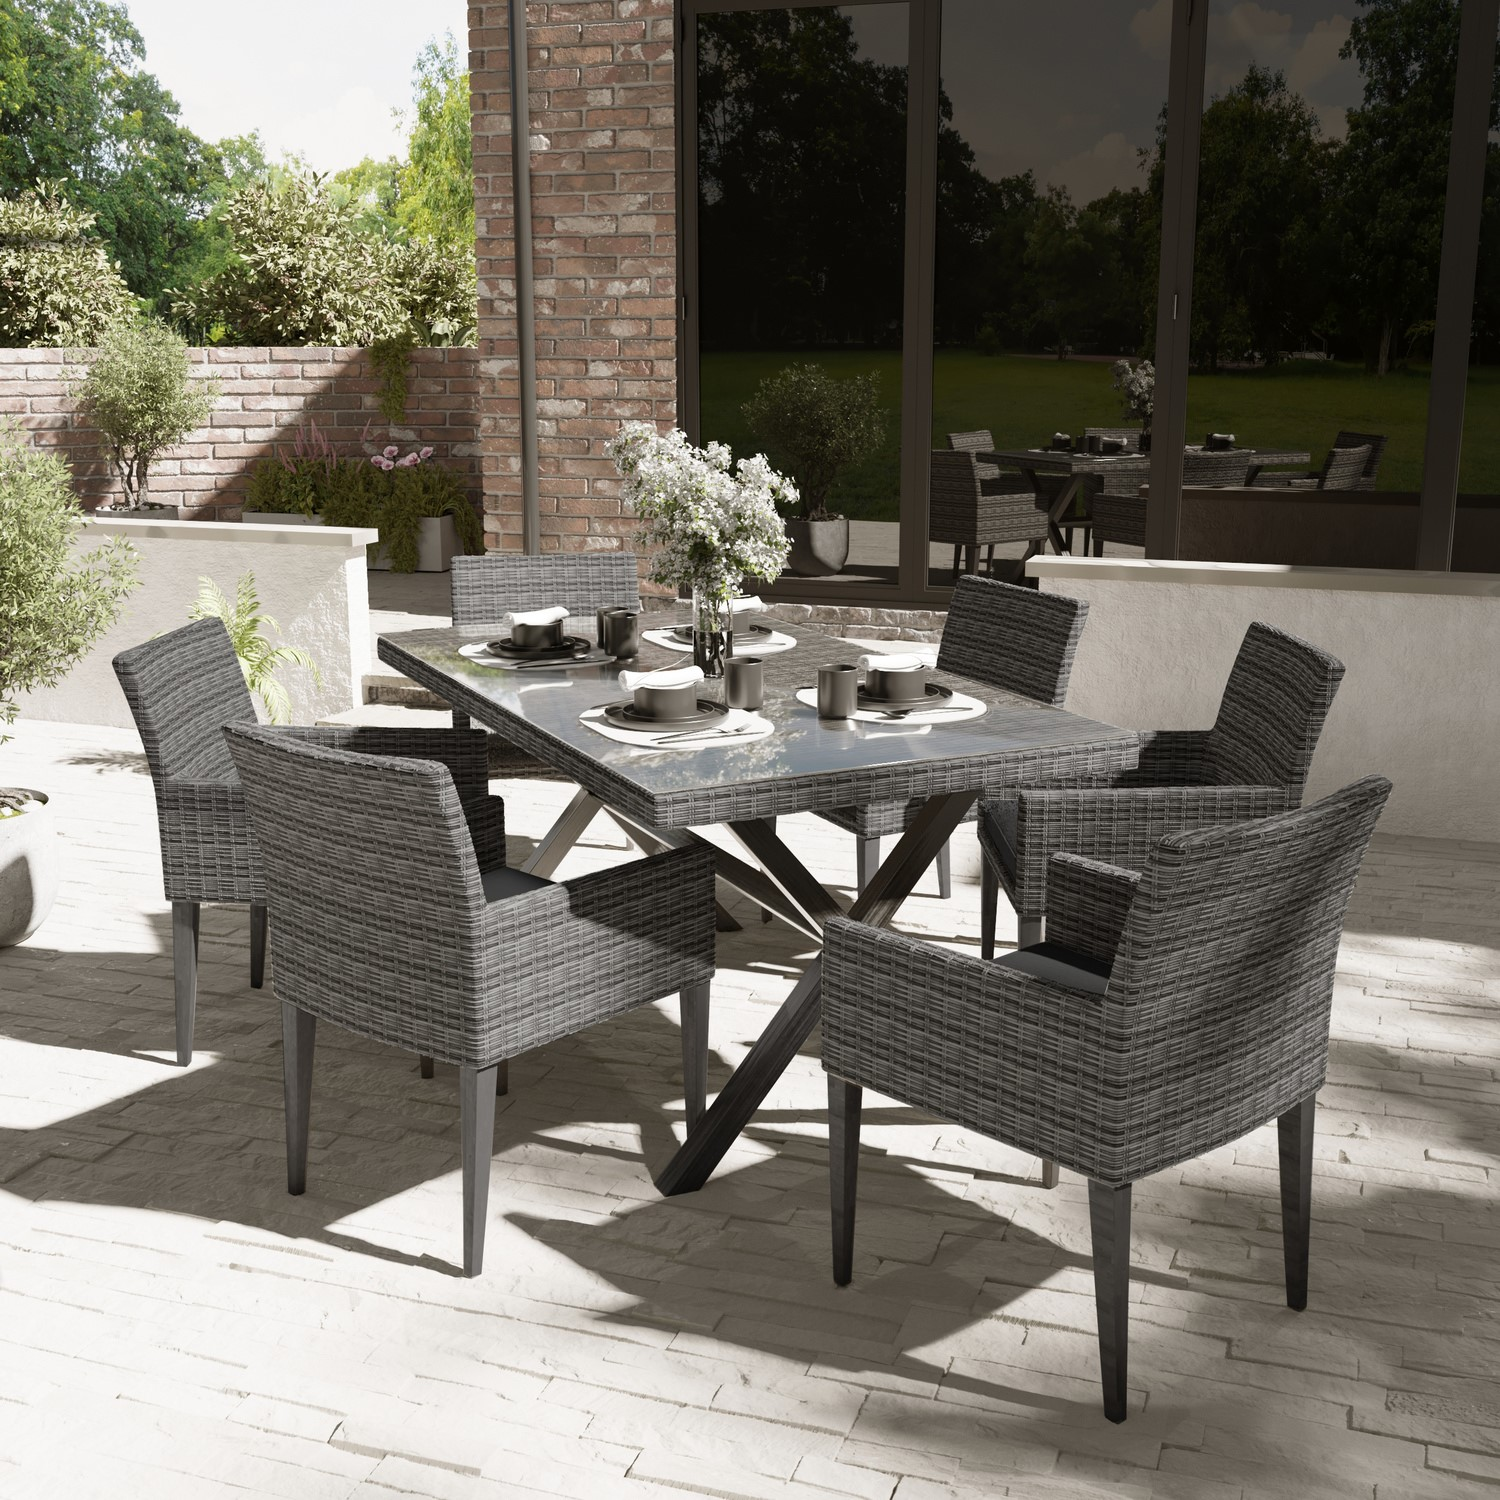 Outdoor Rattan Dining Table Set With 6 Chairs In Dark Grey Furniture123